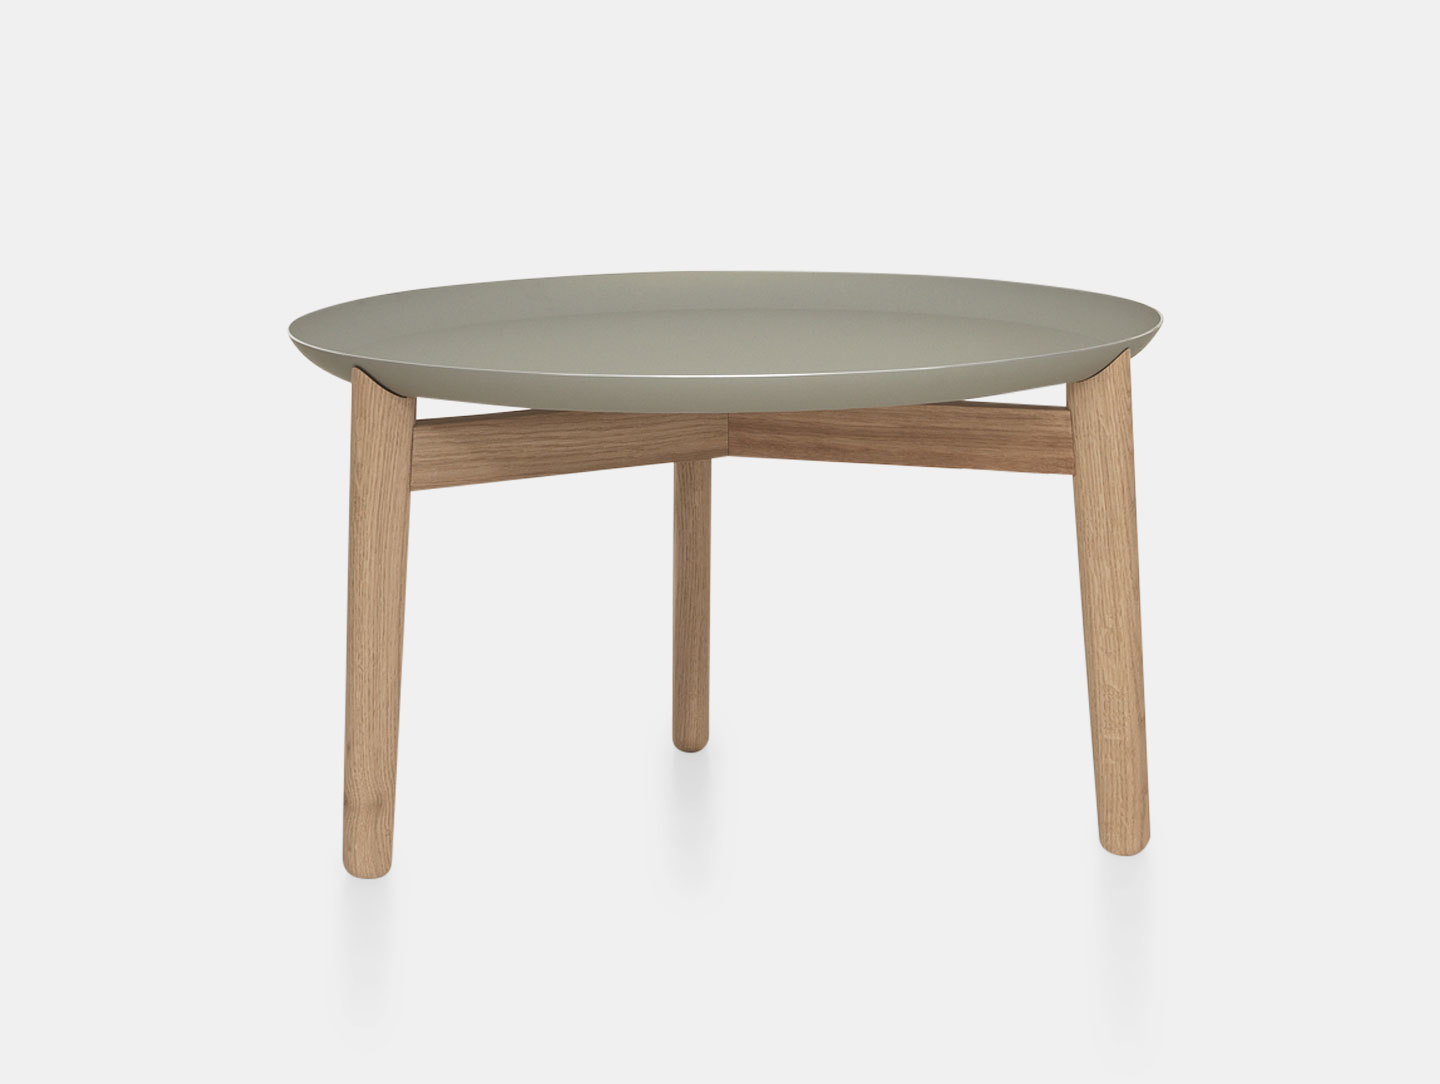 Zeitraum Plaisir Table Oak Grey Top Dia54 H32 Formstelle